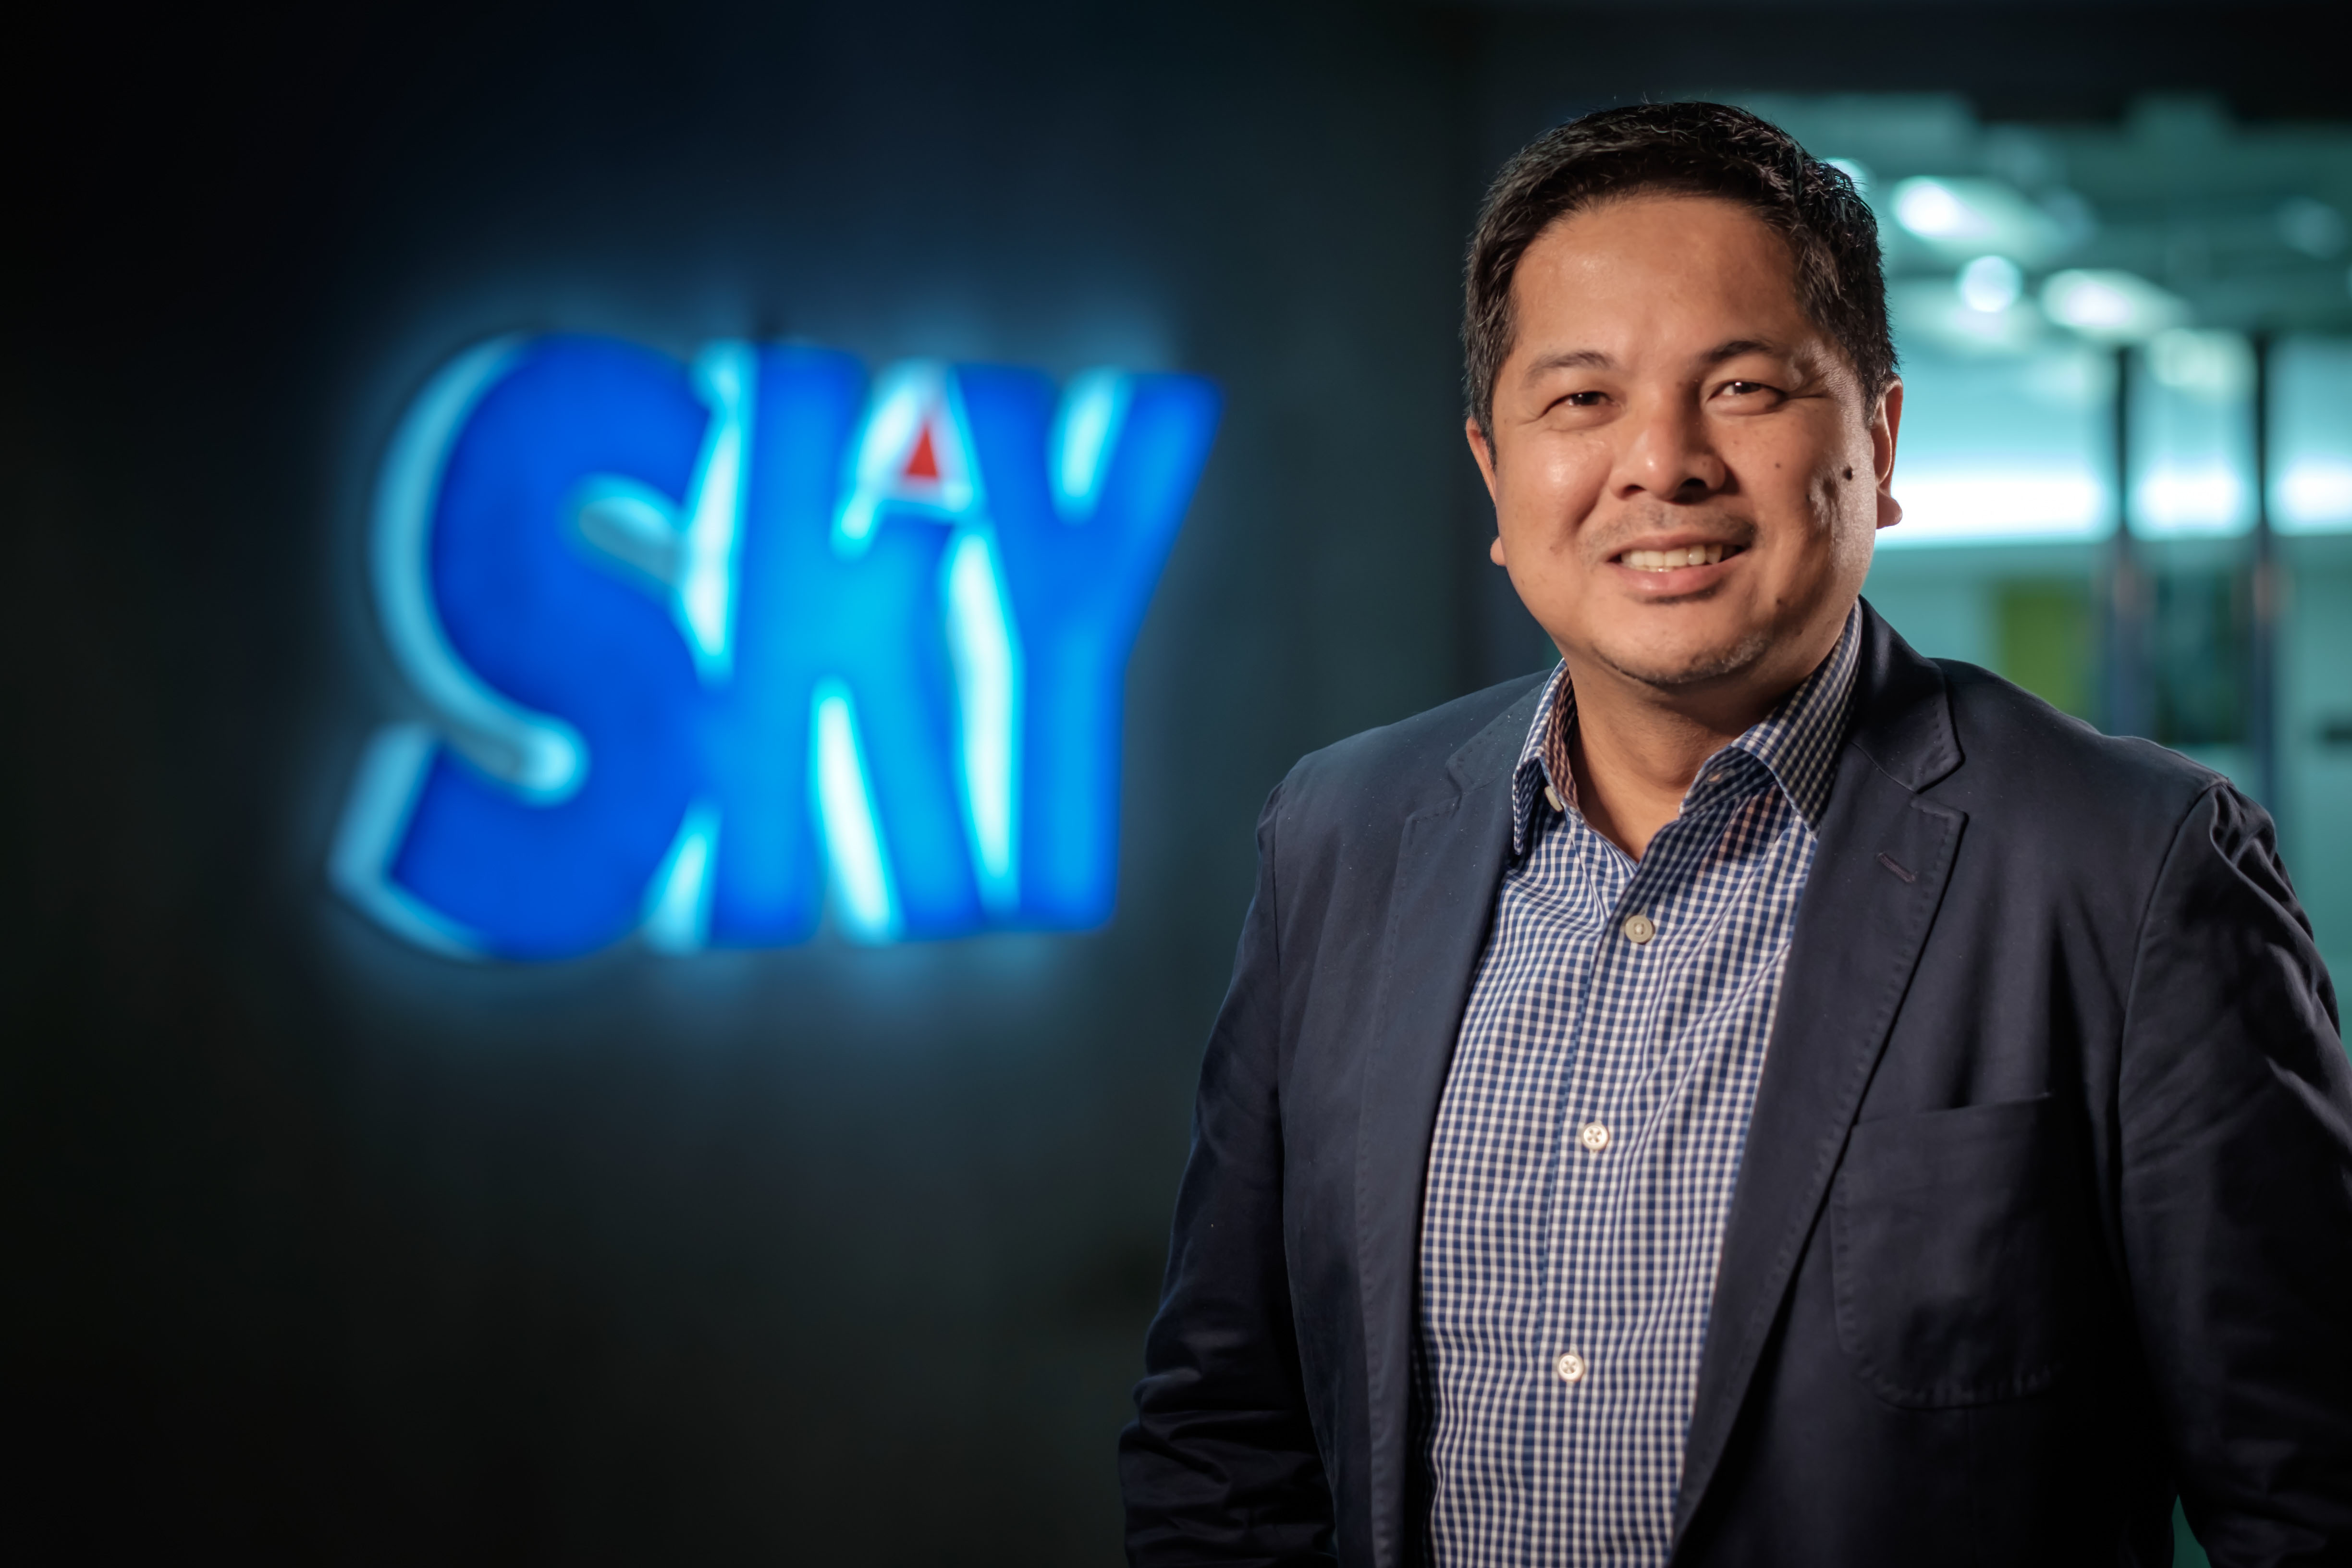 Jon Arayata: Building quickly, building strong